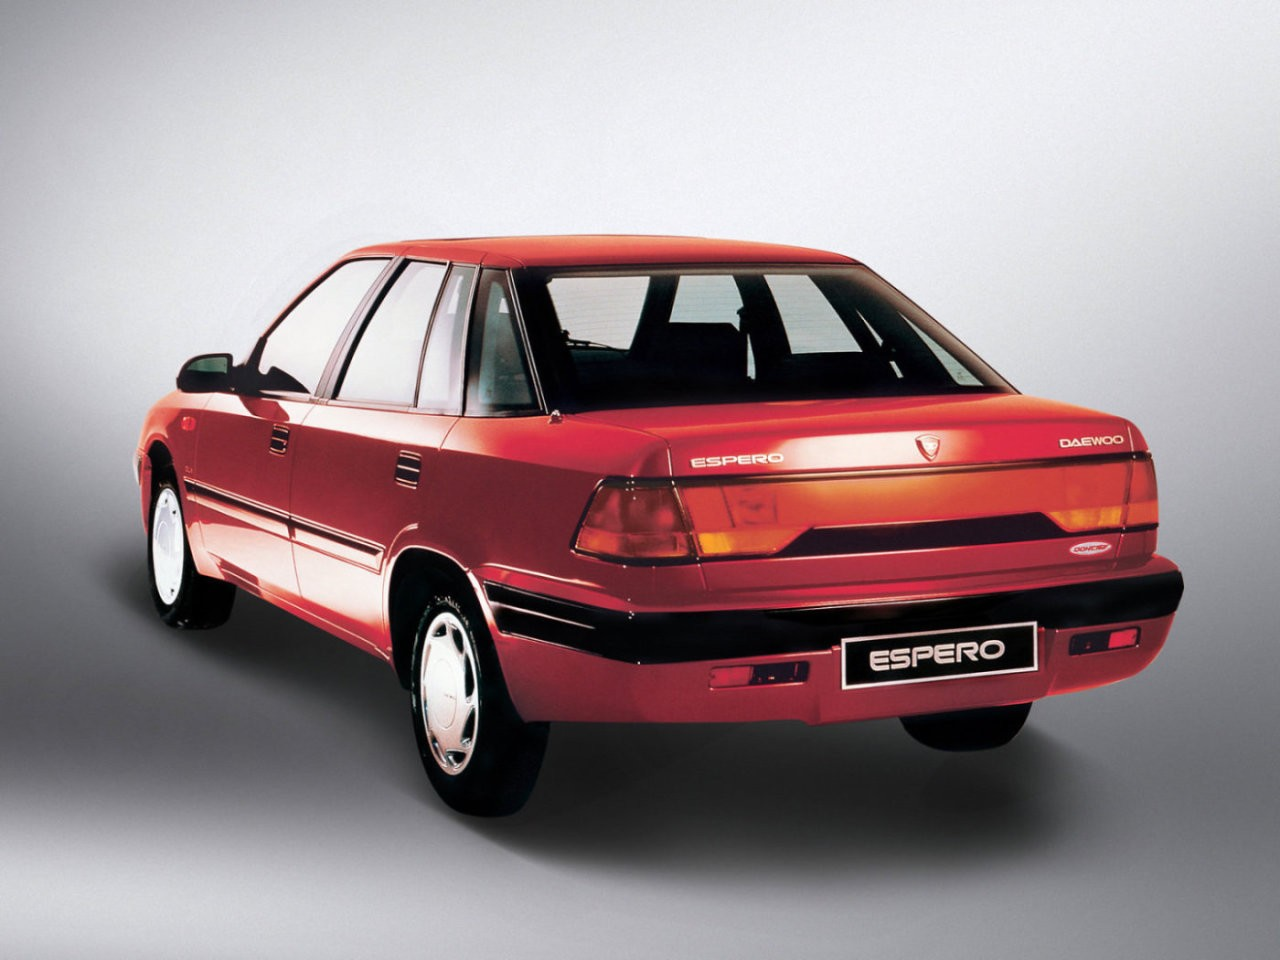 Buyer's Guide: Daewoo Espero (1995-97)